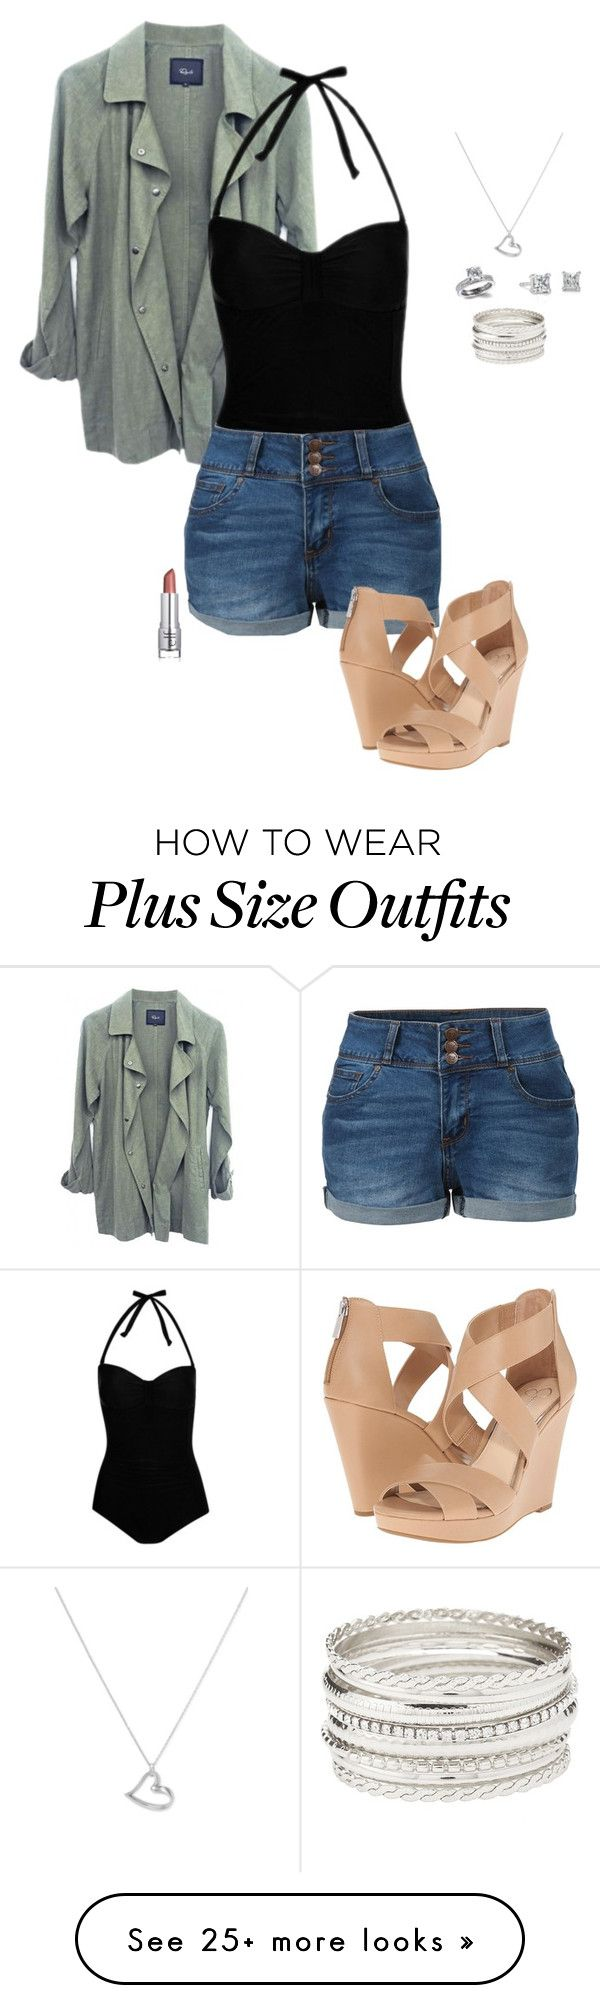 """""""Untitled #4447"""" by gone-girl on Polyvore featuring George, LE3NO, Charlotte Russe, Jessica Simpson, Argento Vivo, Fantasy Jewelry Box and Blue Nile"""